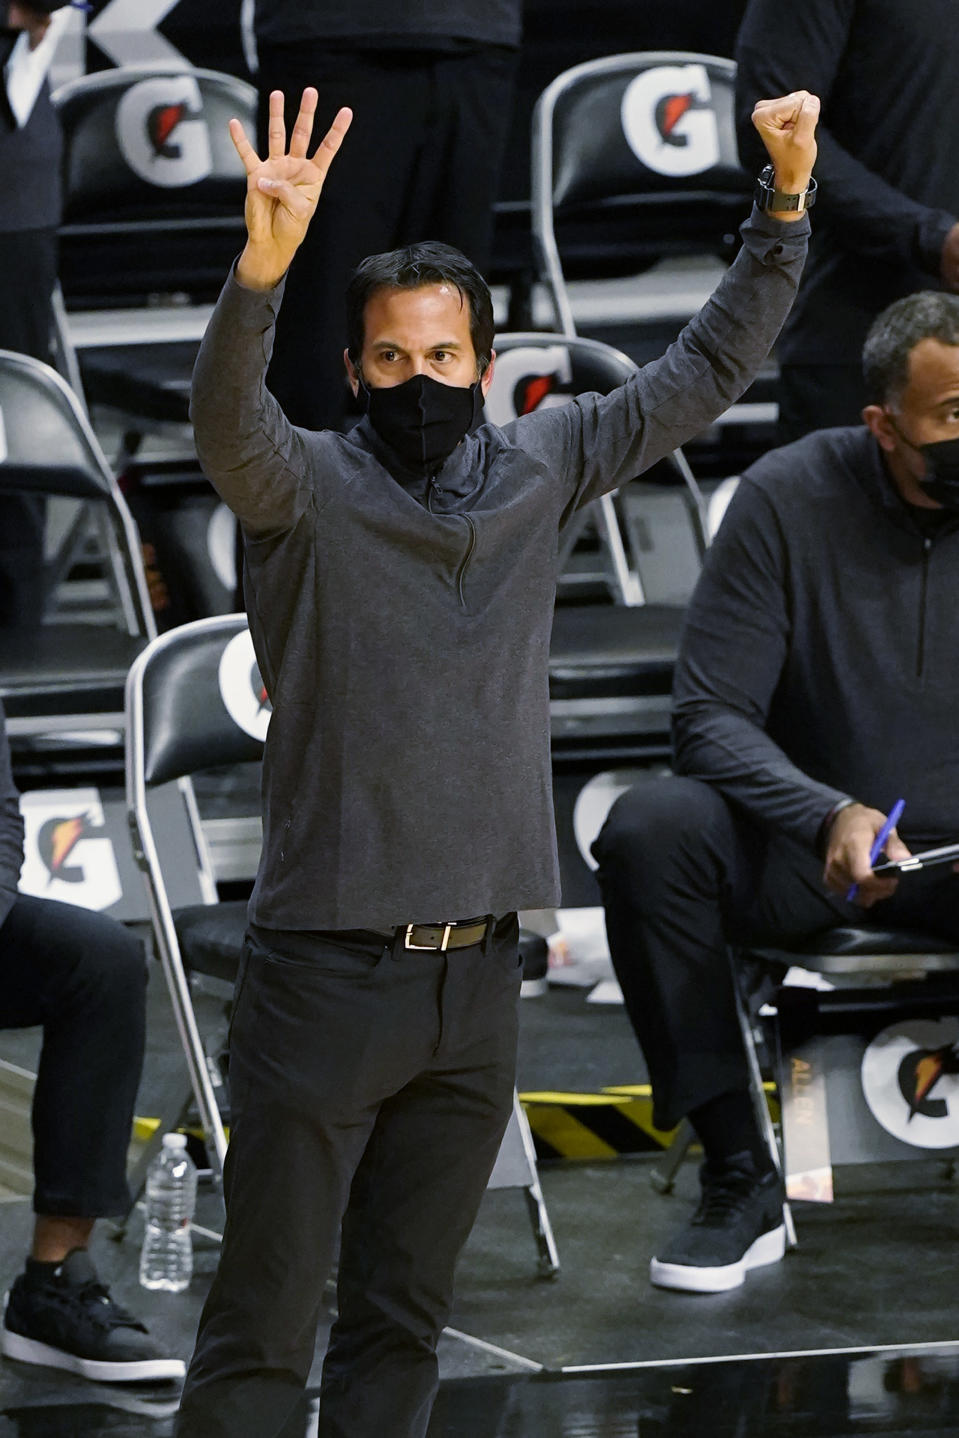 Miami Heat head coach Erik Spoelstra gestures during the first half of an NBA basketball game against the Detroit Pistons, Monday, Jan. 18, 2021, in Miami. (AP Photo/Marta Lavandier)